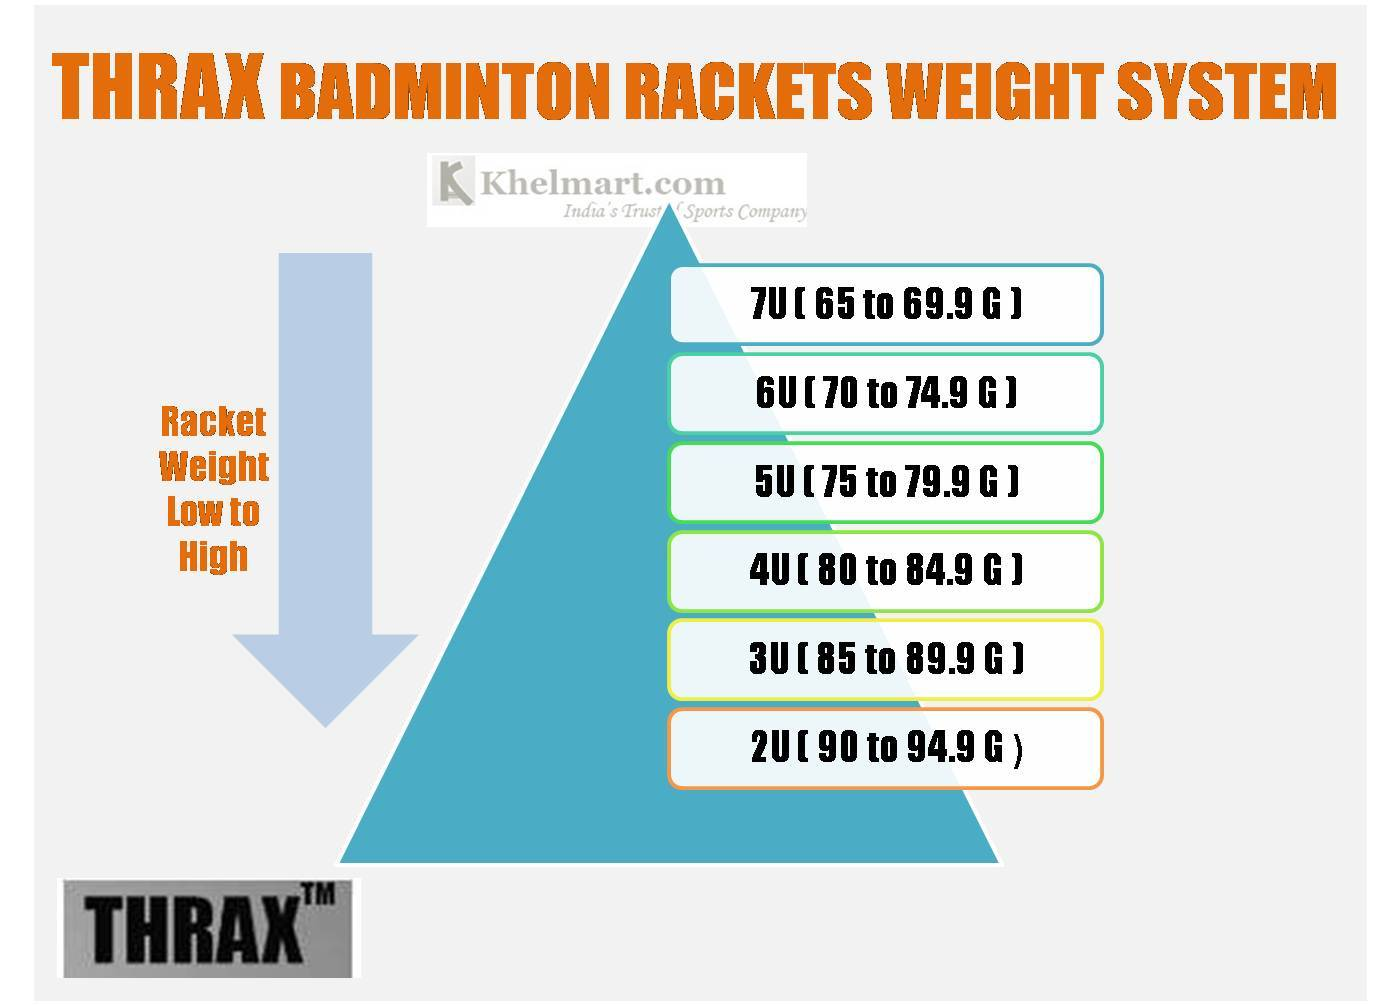 Thrax_Badminton_racket_Weight_Standard_Khelmart